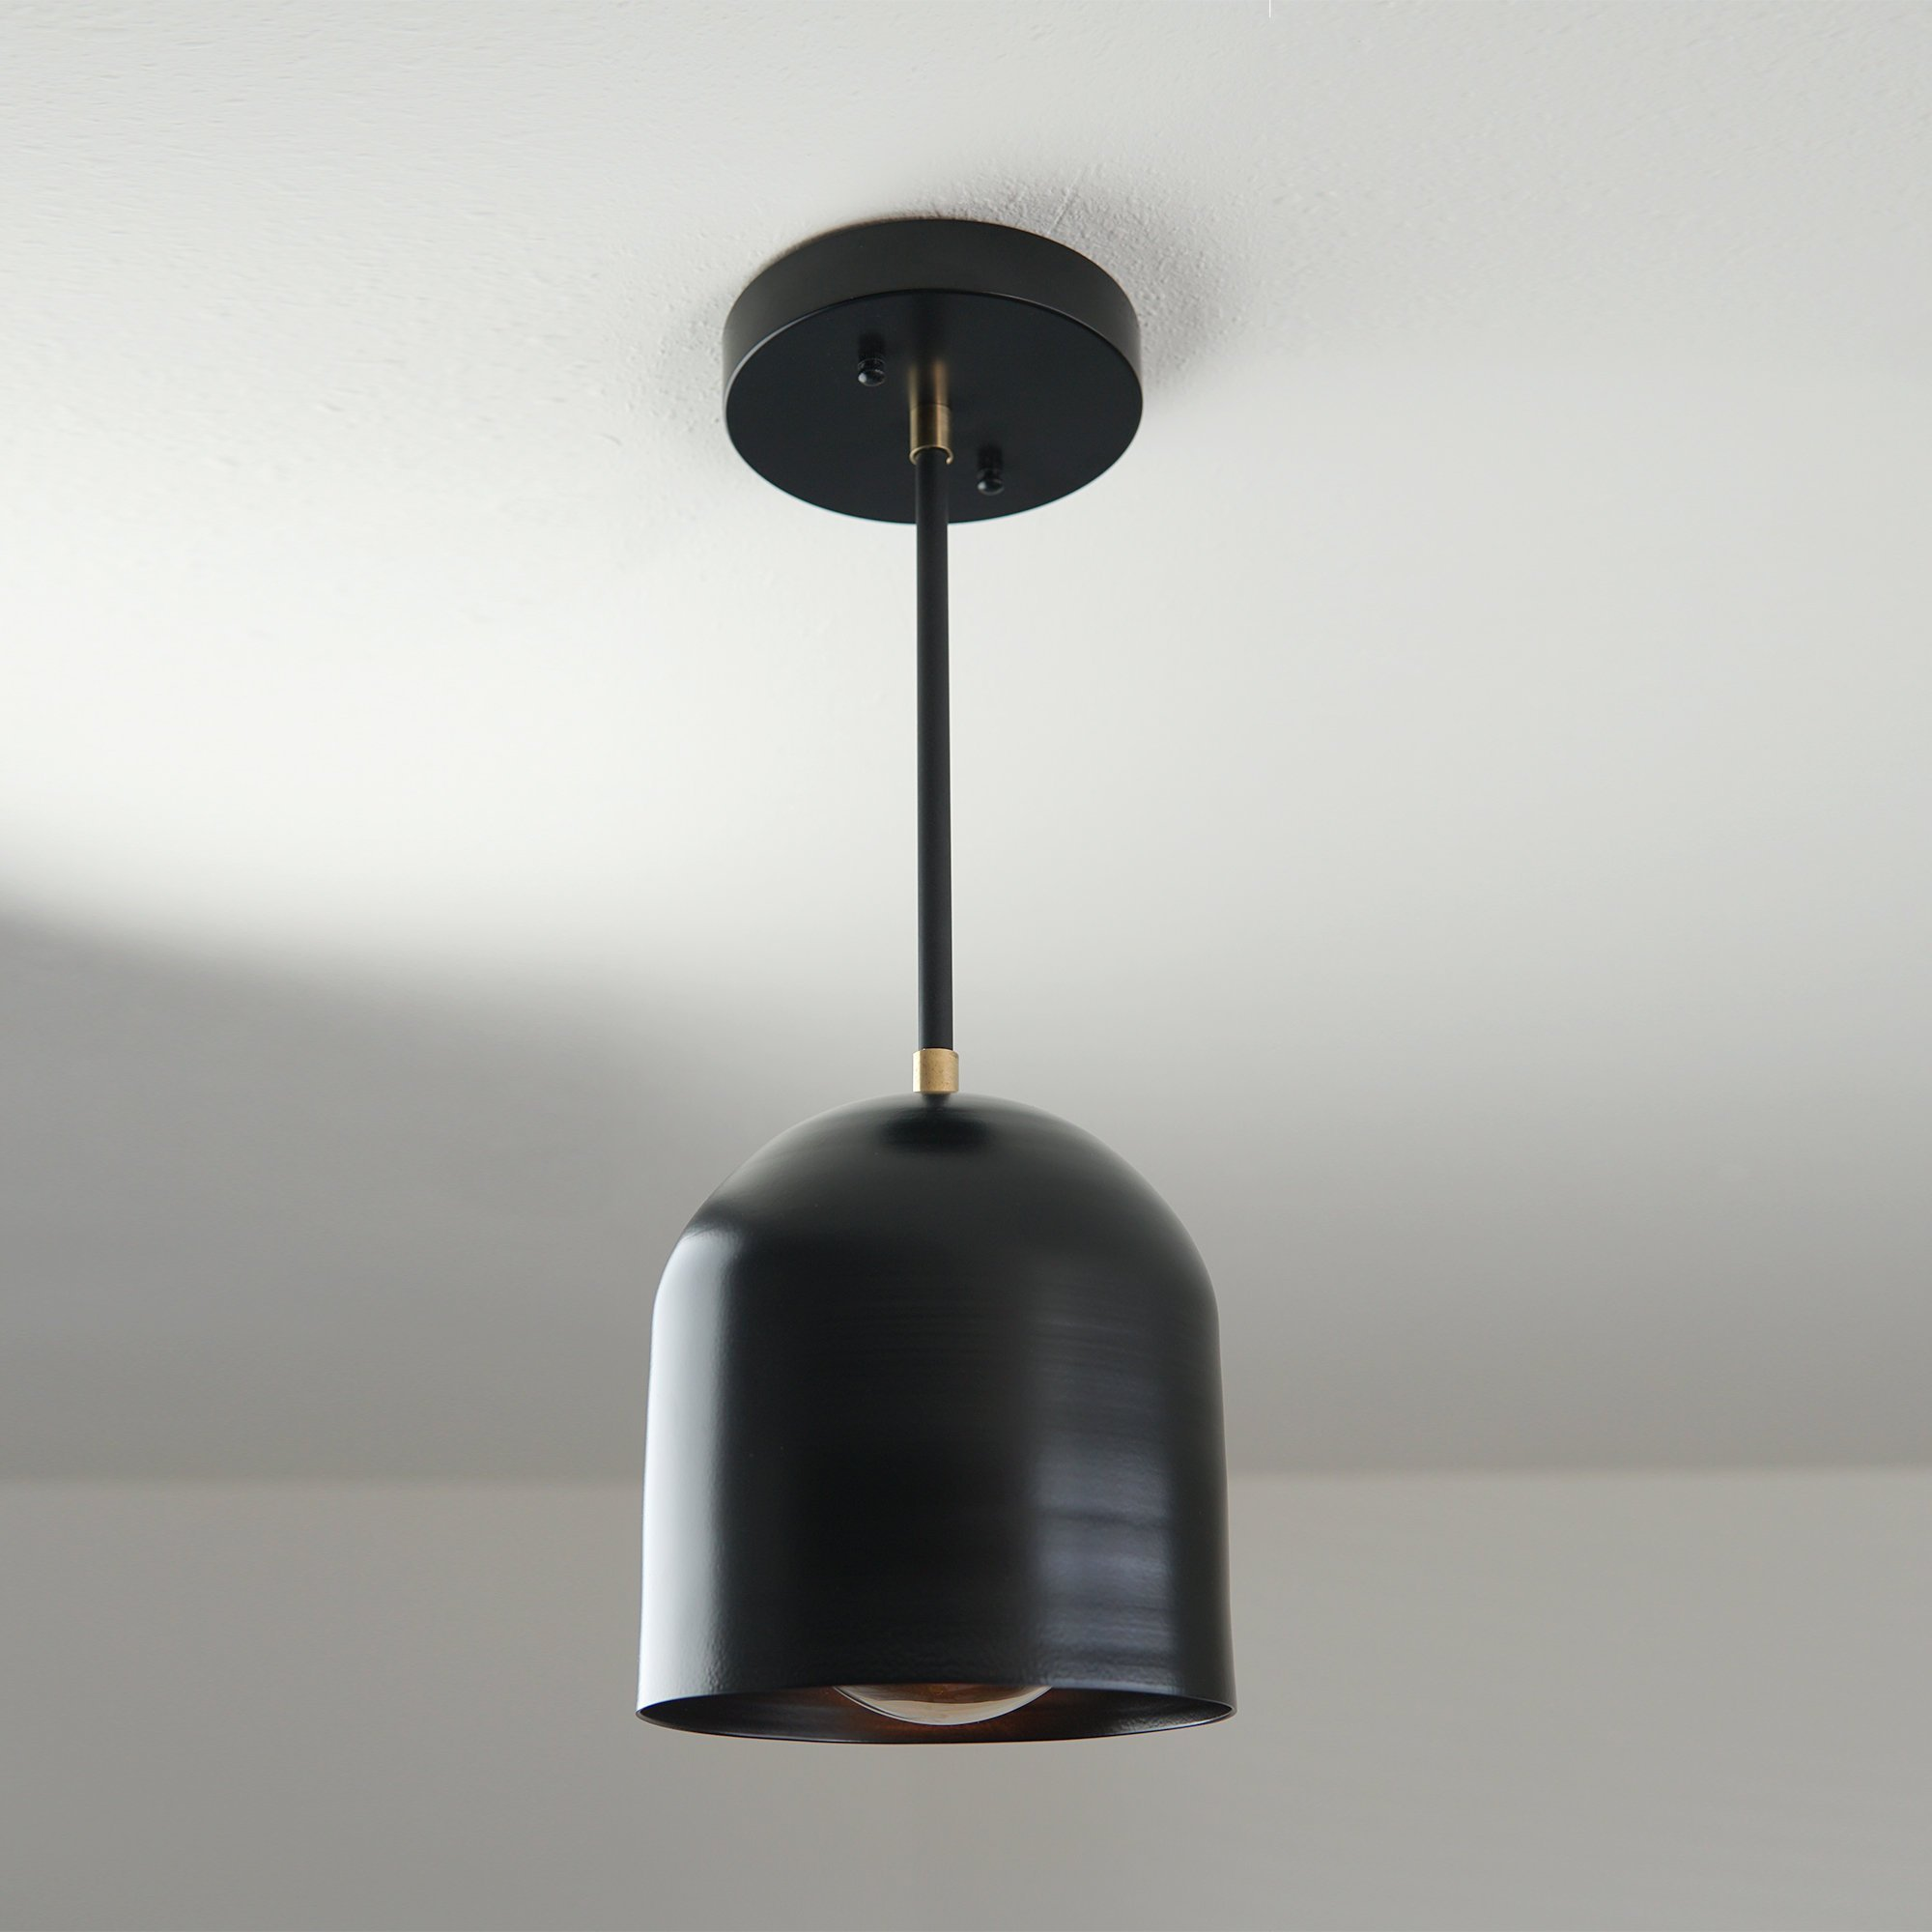 ARC – Small Black Dome Pendant Light